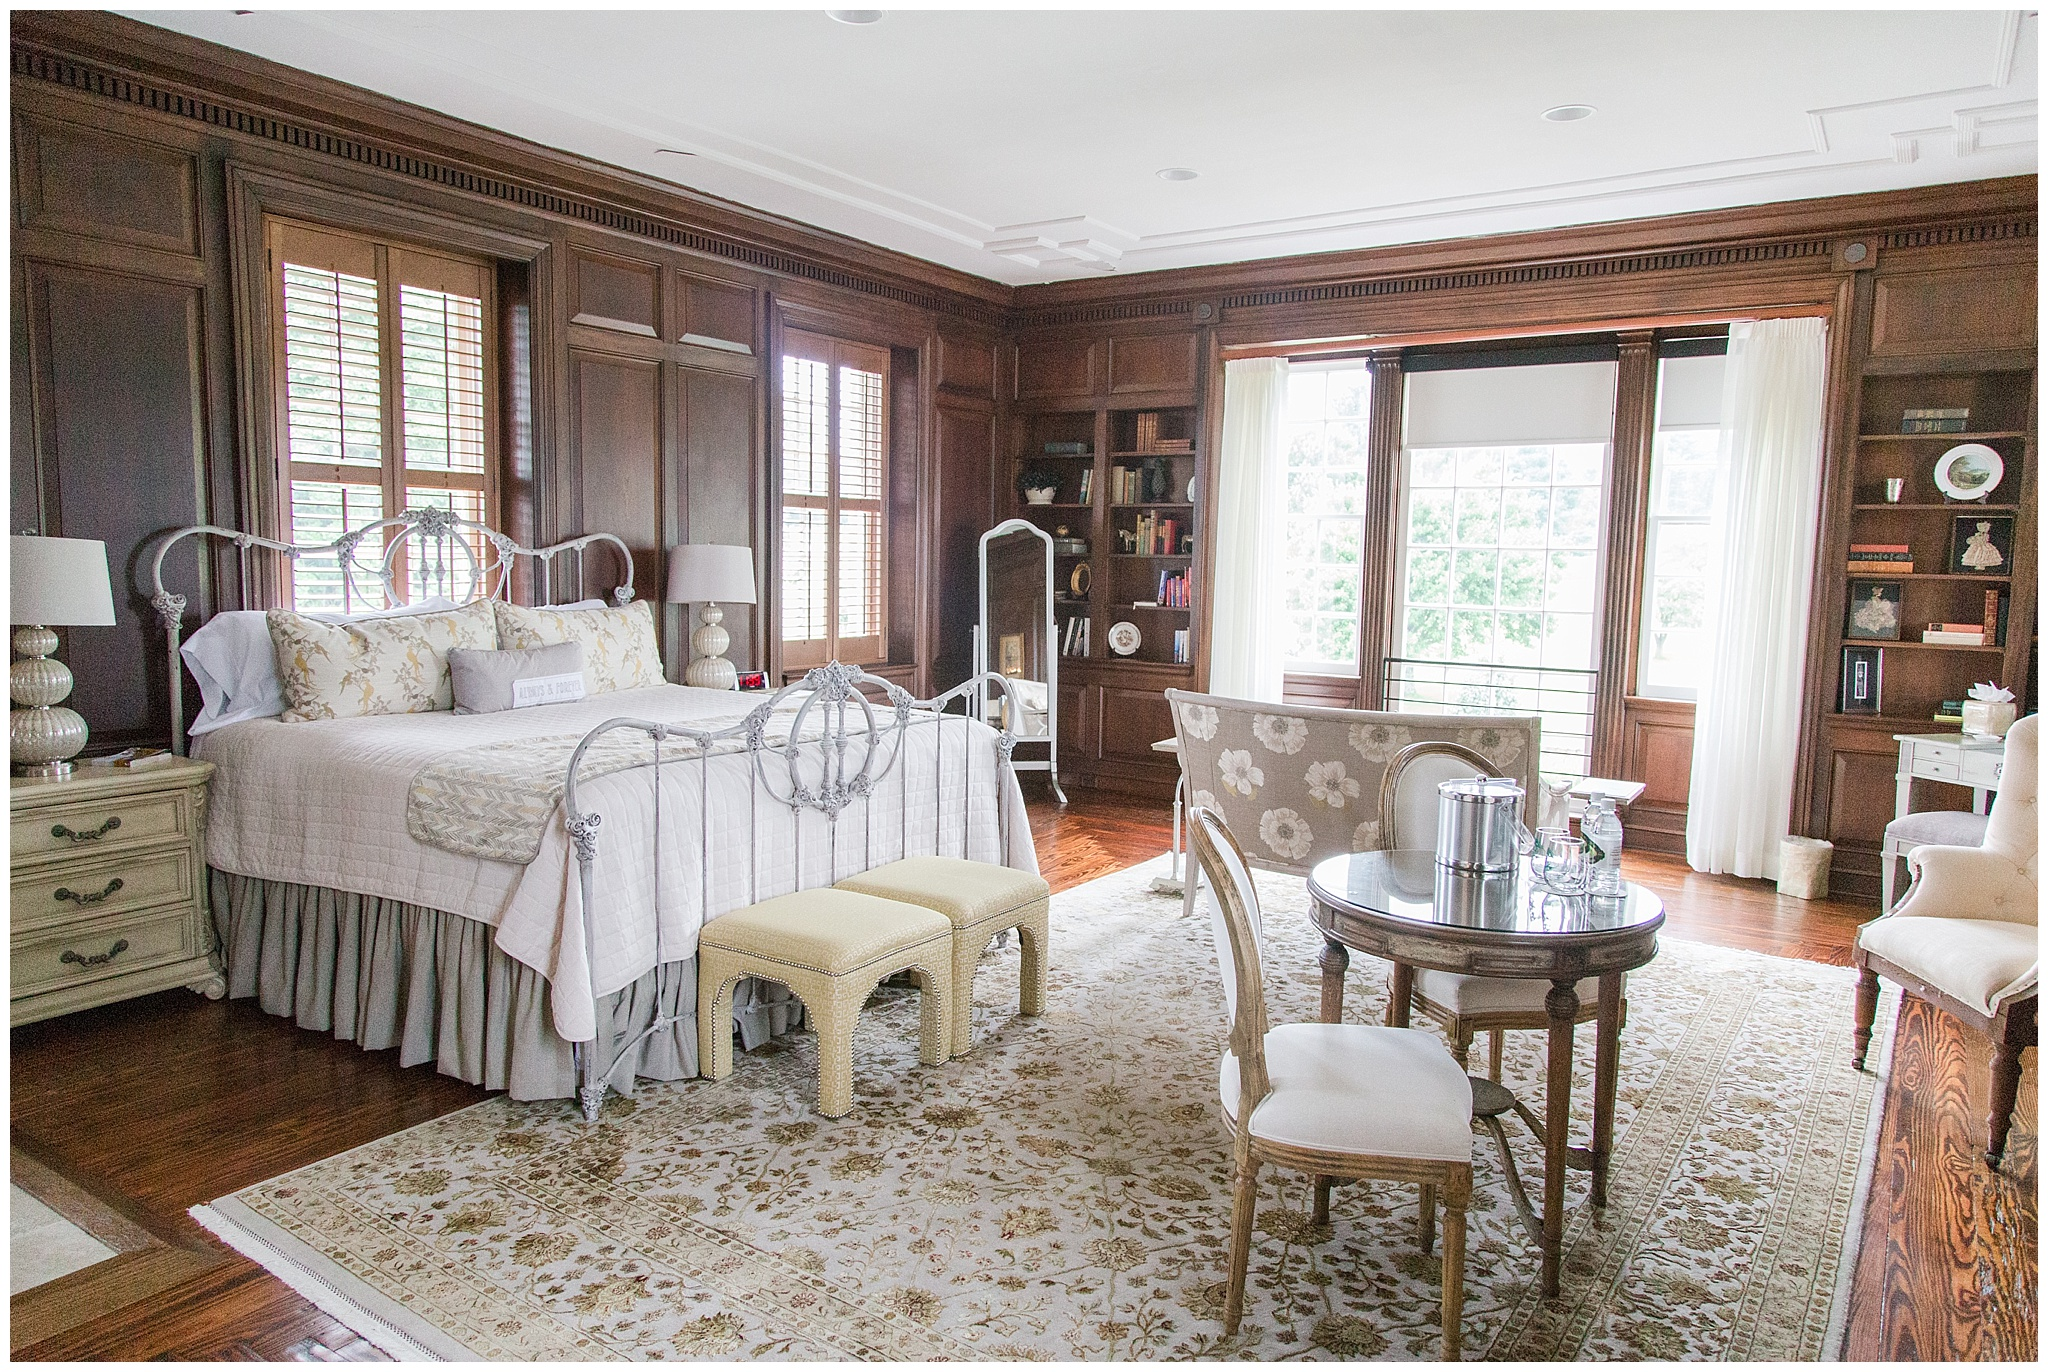 Honeymoon suite (and where bride and bridesmaids can get dressed)